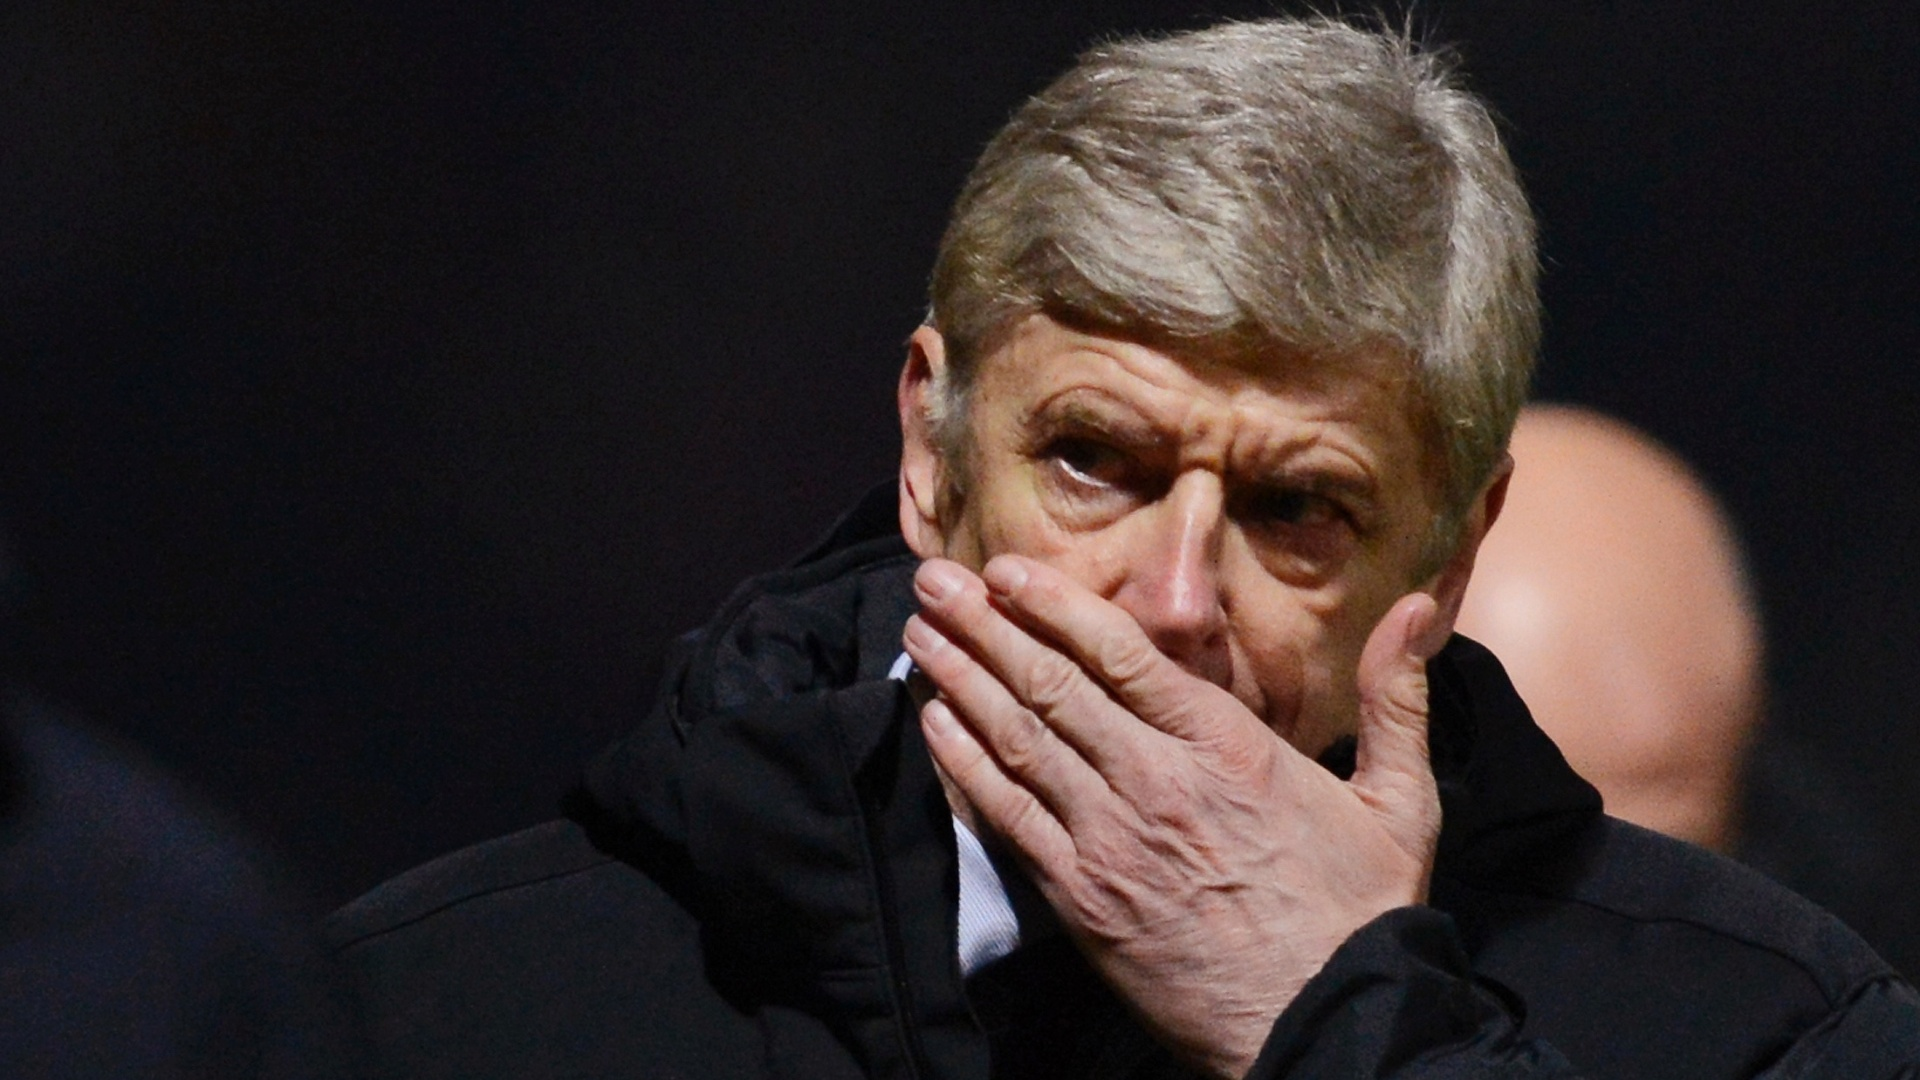 Arsene Wenger lamenta derrota do Arsenal